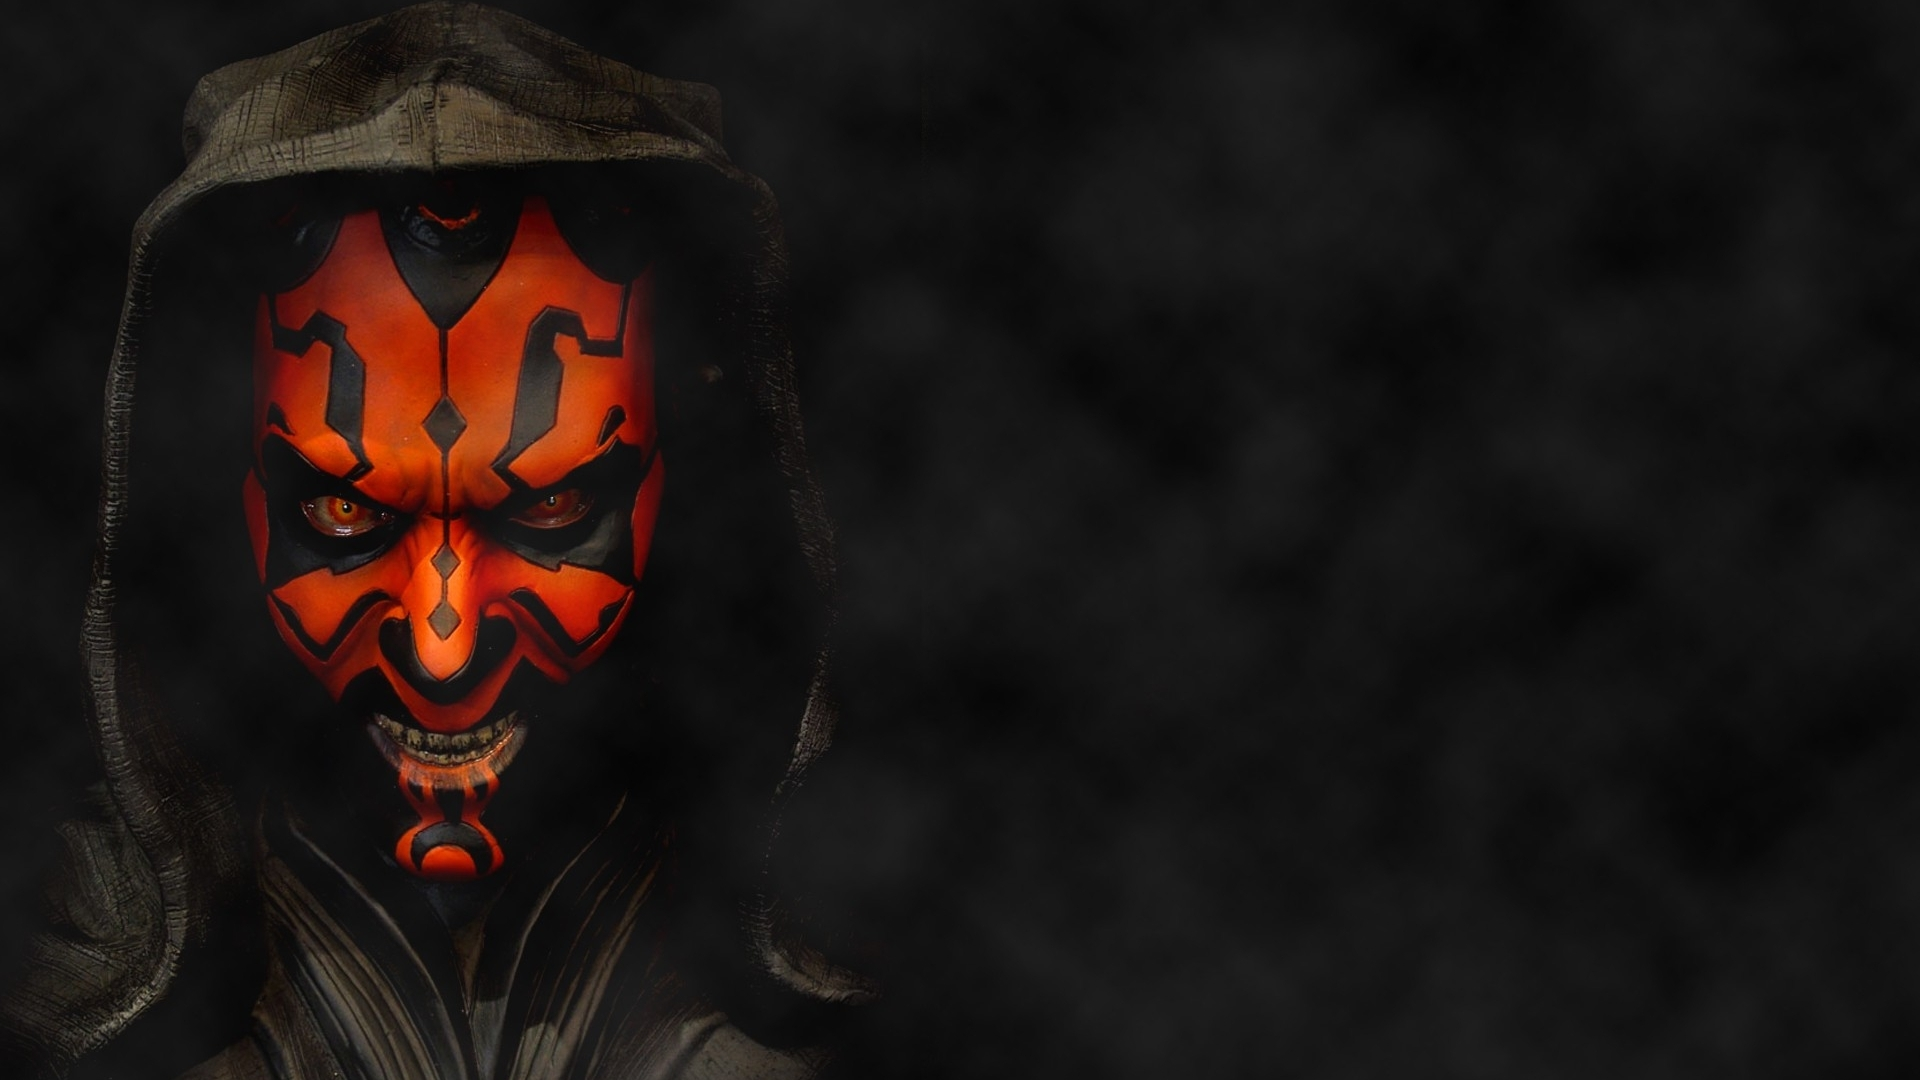 Darth Maul Wallpaper 1080p 30 Background Pictures 1920x1080